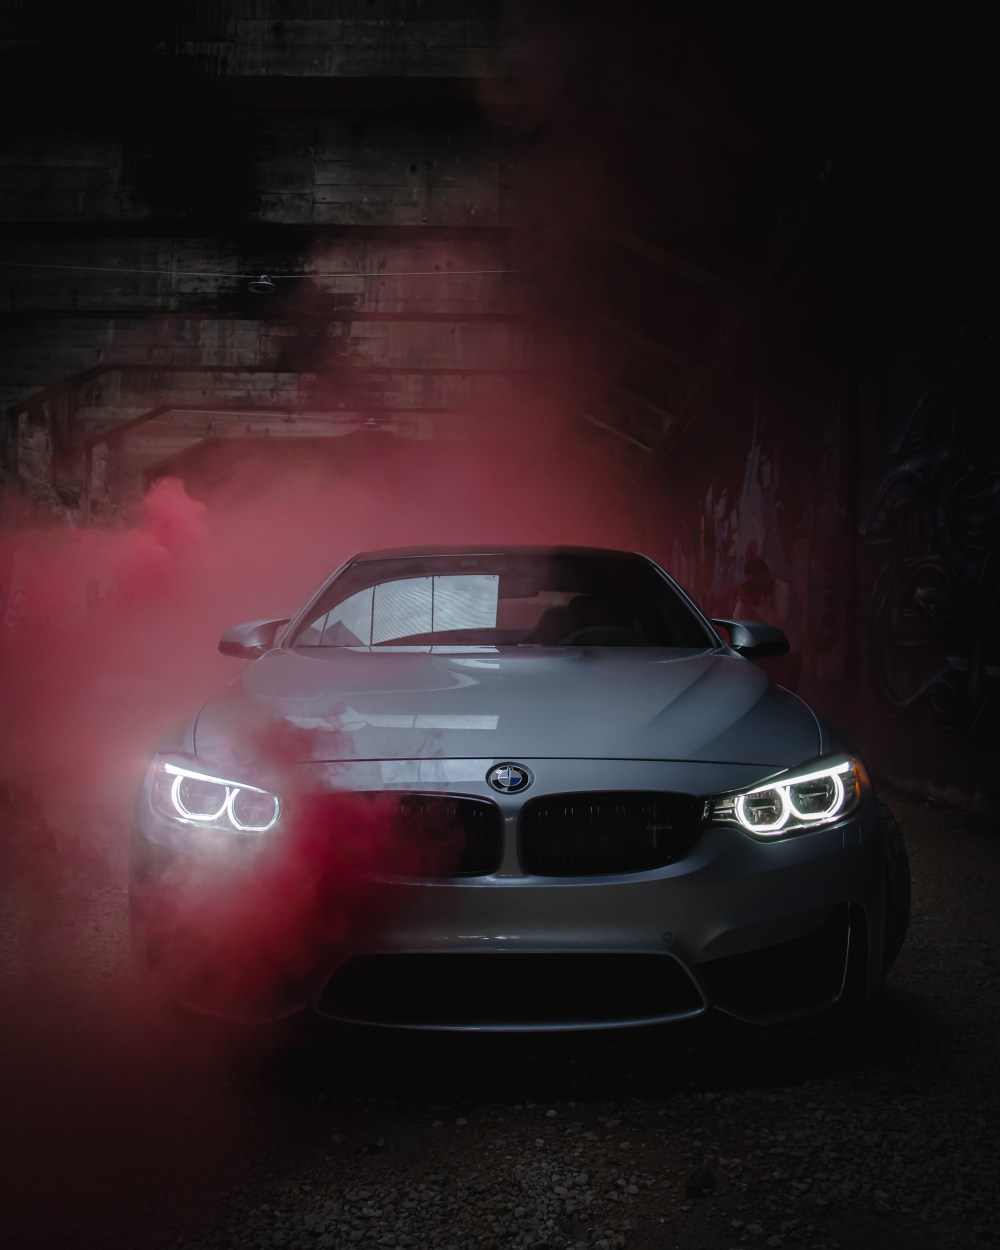 bmw m4 2018 hd cars 4k wallpapers images backgrounds photos and. Bmw M4 Pictures Hd Download Free Images On Unsplash